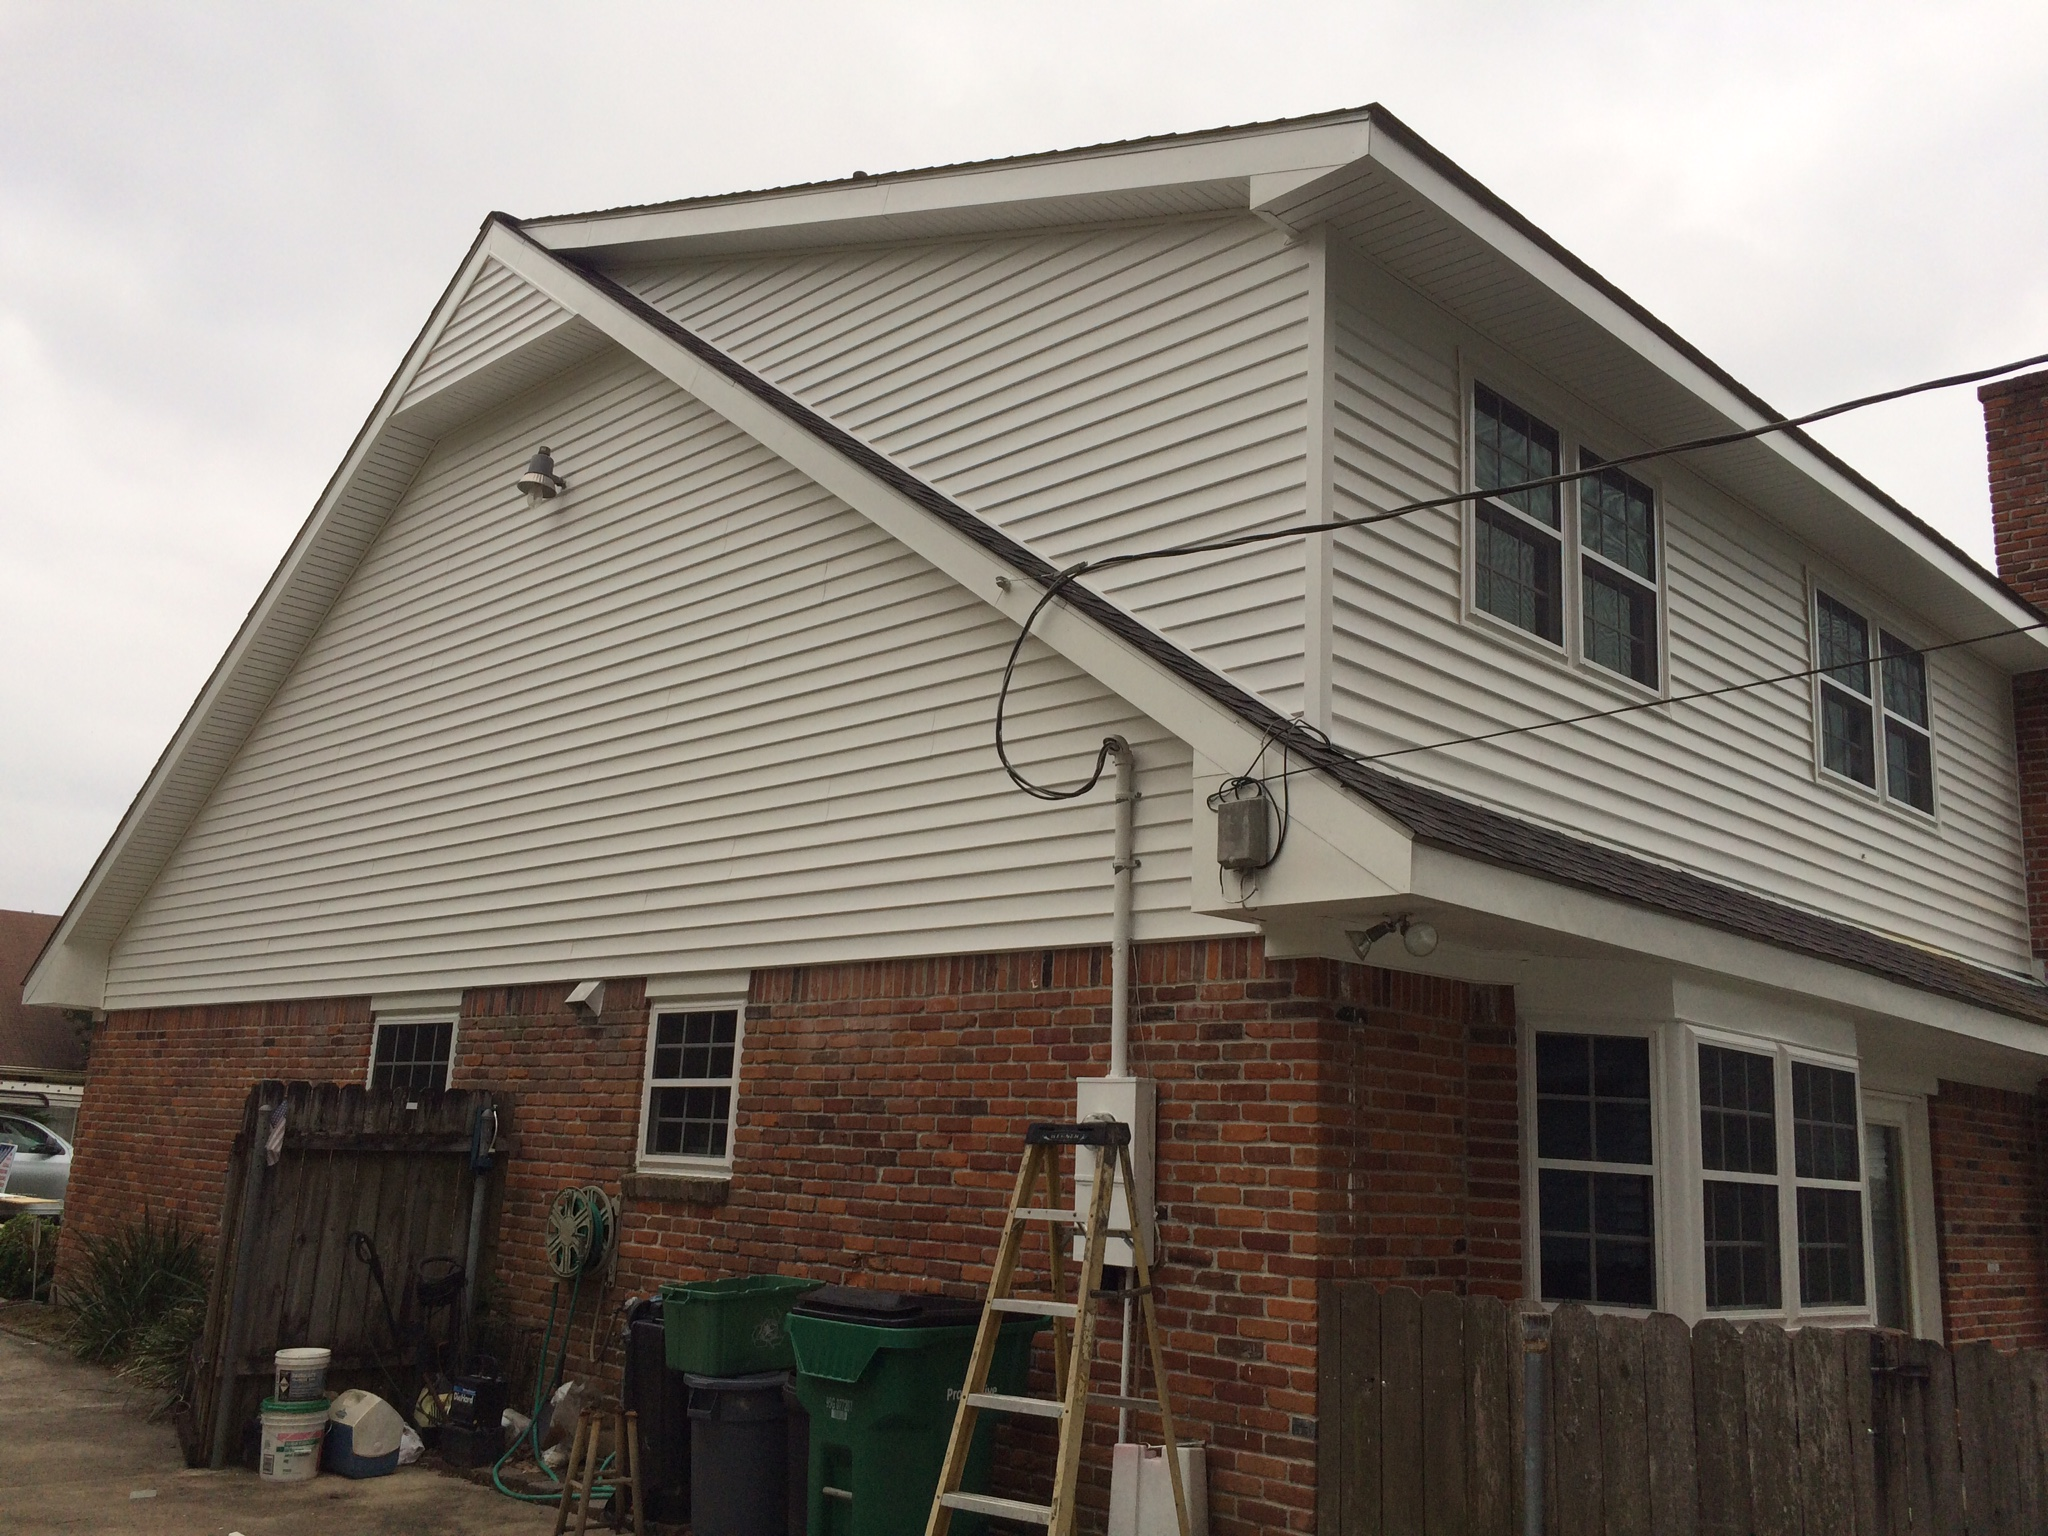 7 Popular Siding Materials To Consider: Types Of Vinyl Siding